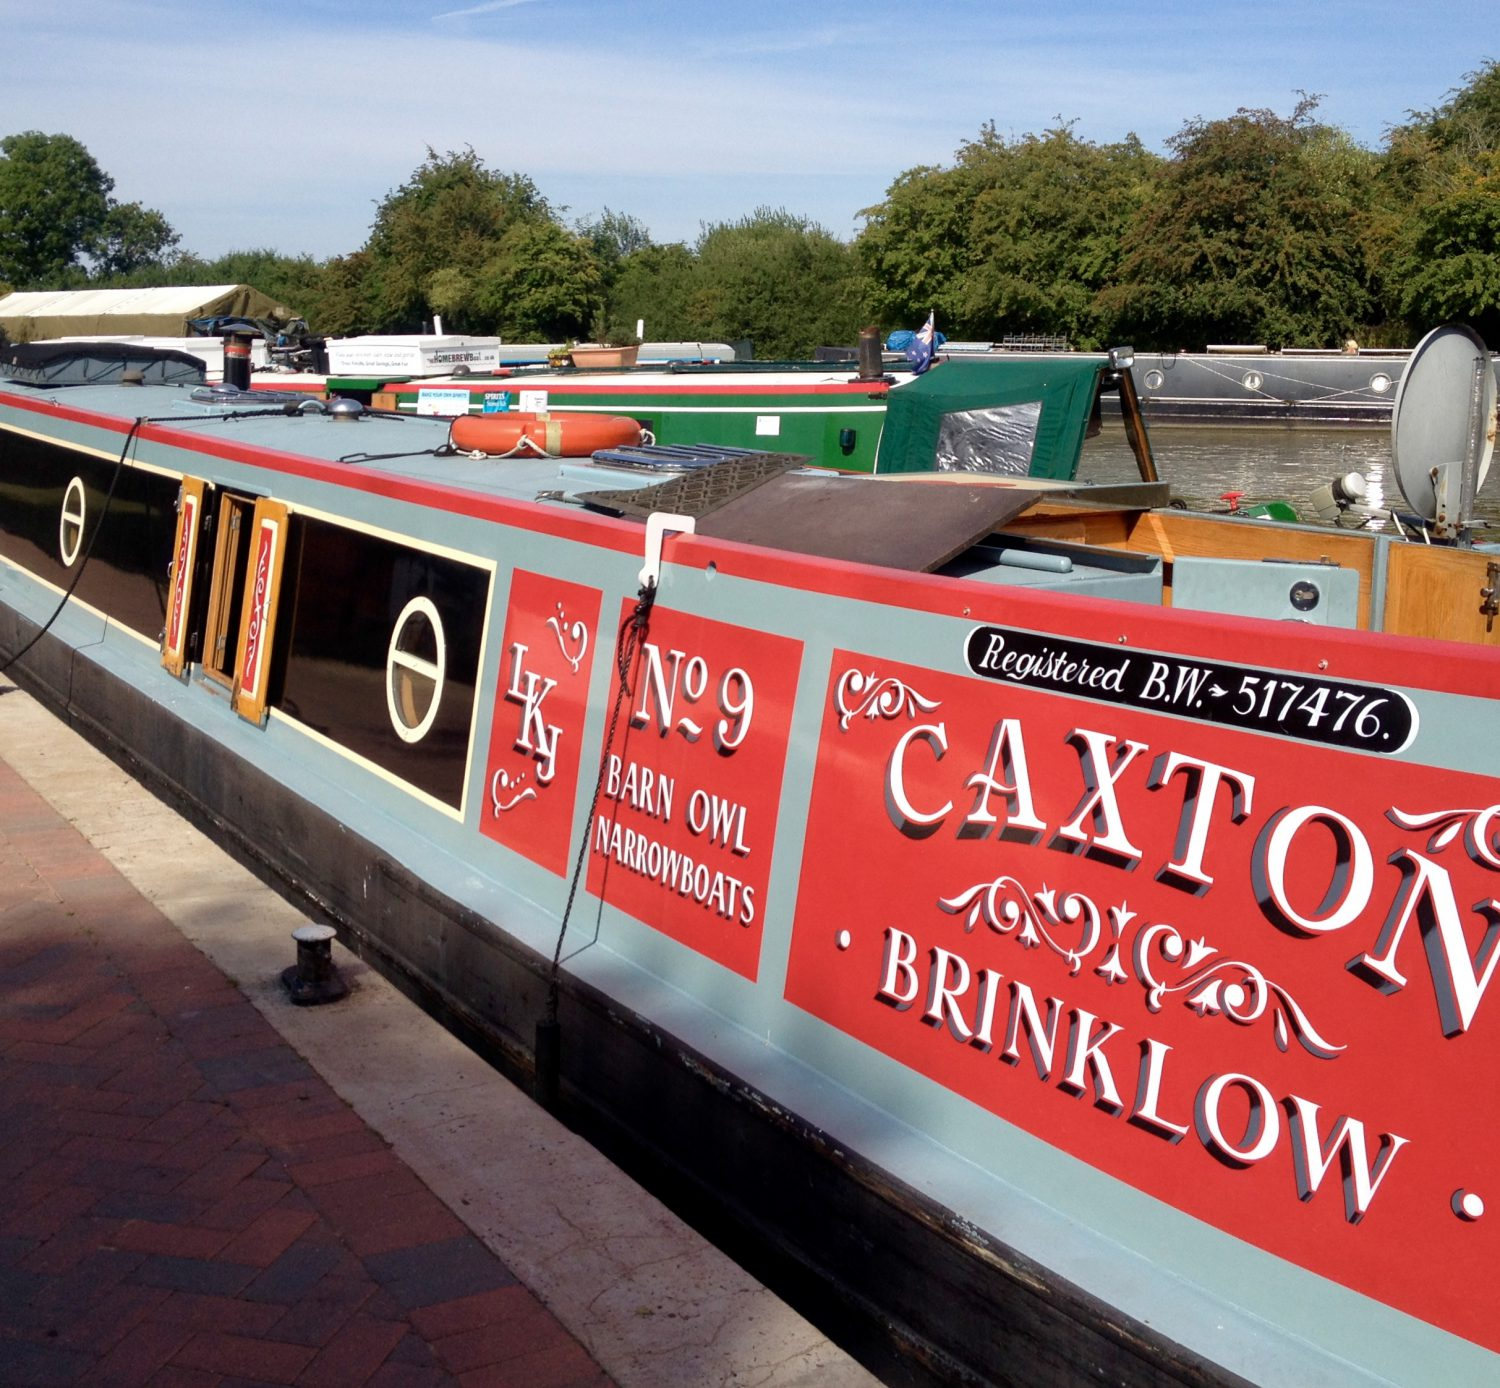 NB Caxton, Paul and Elaine's narrowboat, now with new owners. We spotted it on our journey on Wednesday at Calcutt locks